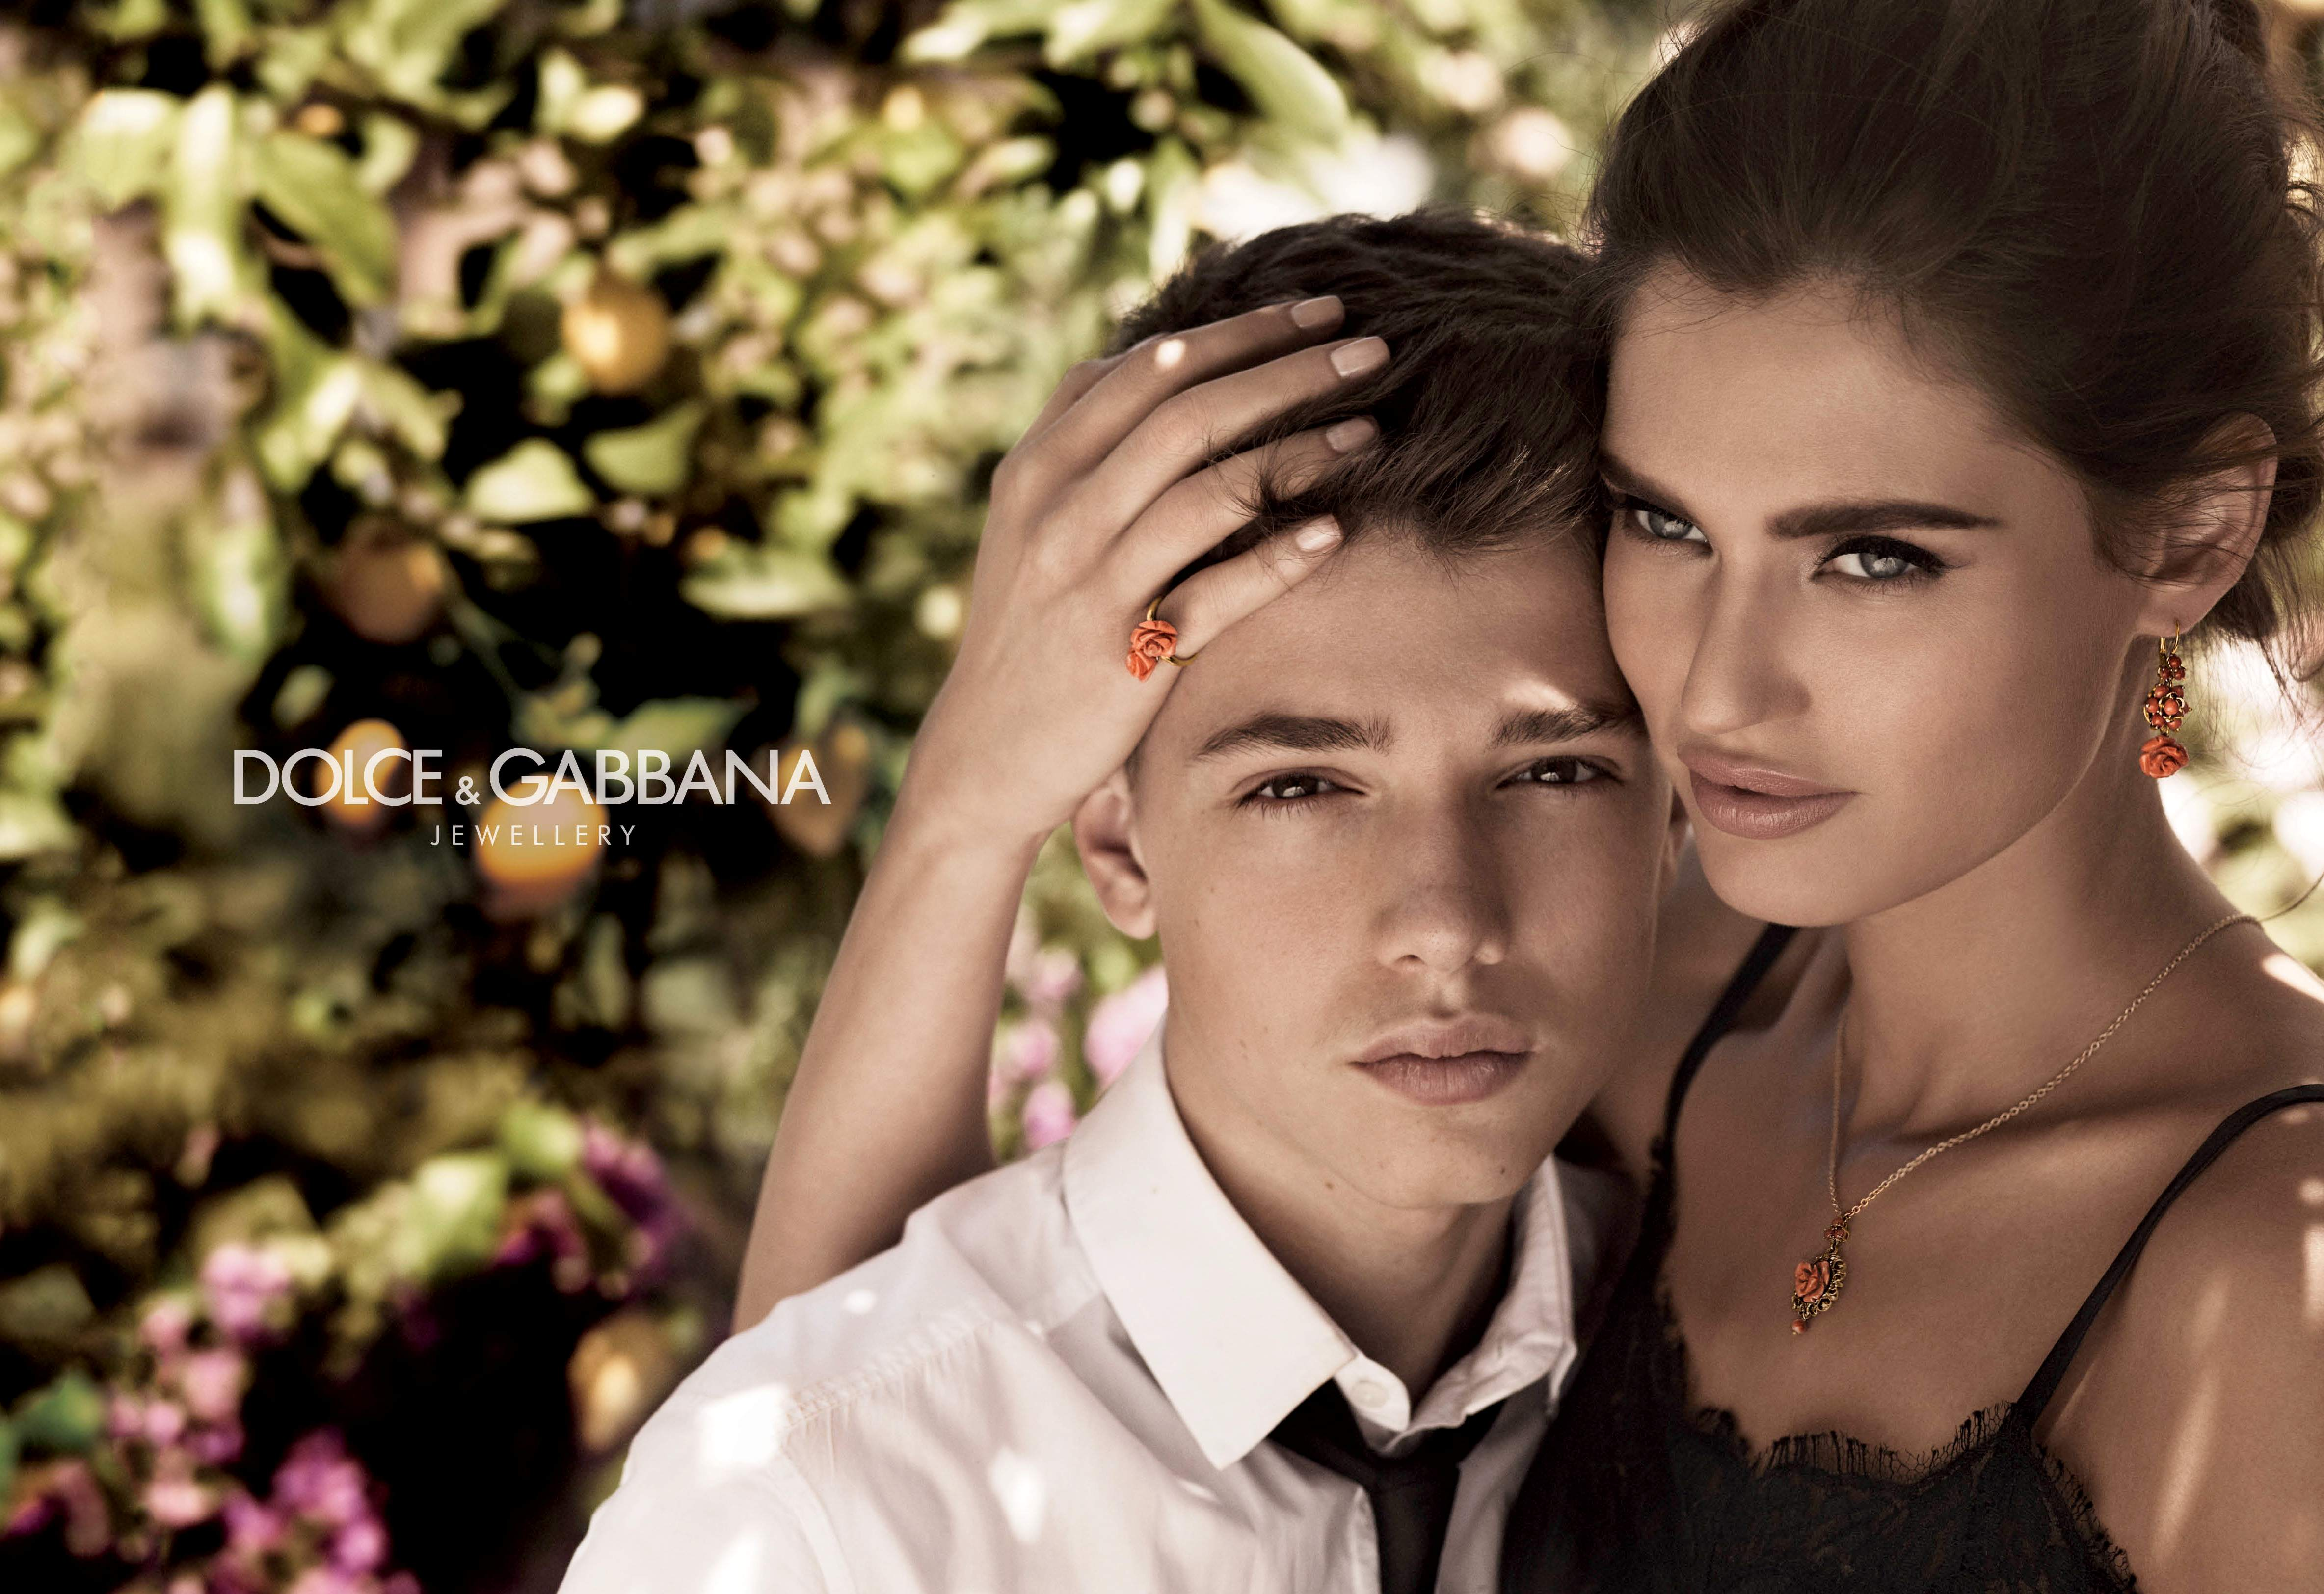 are dolce and gabbana dating sites